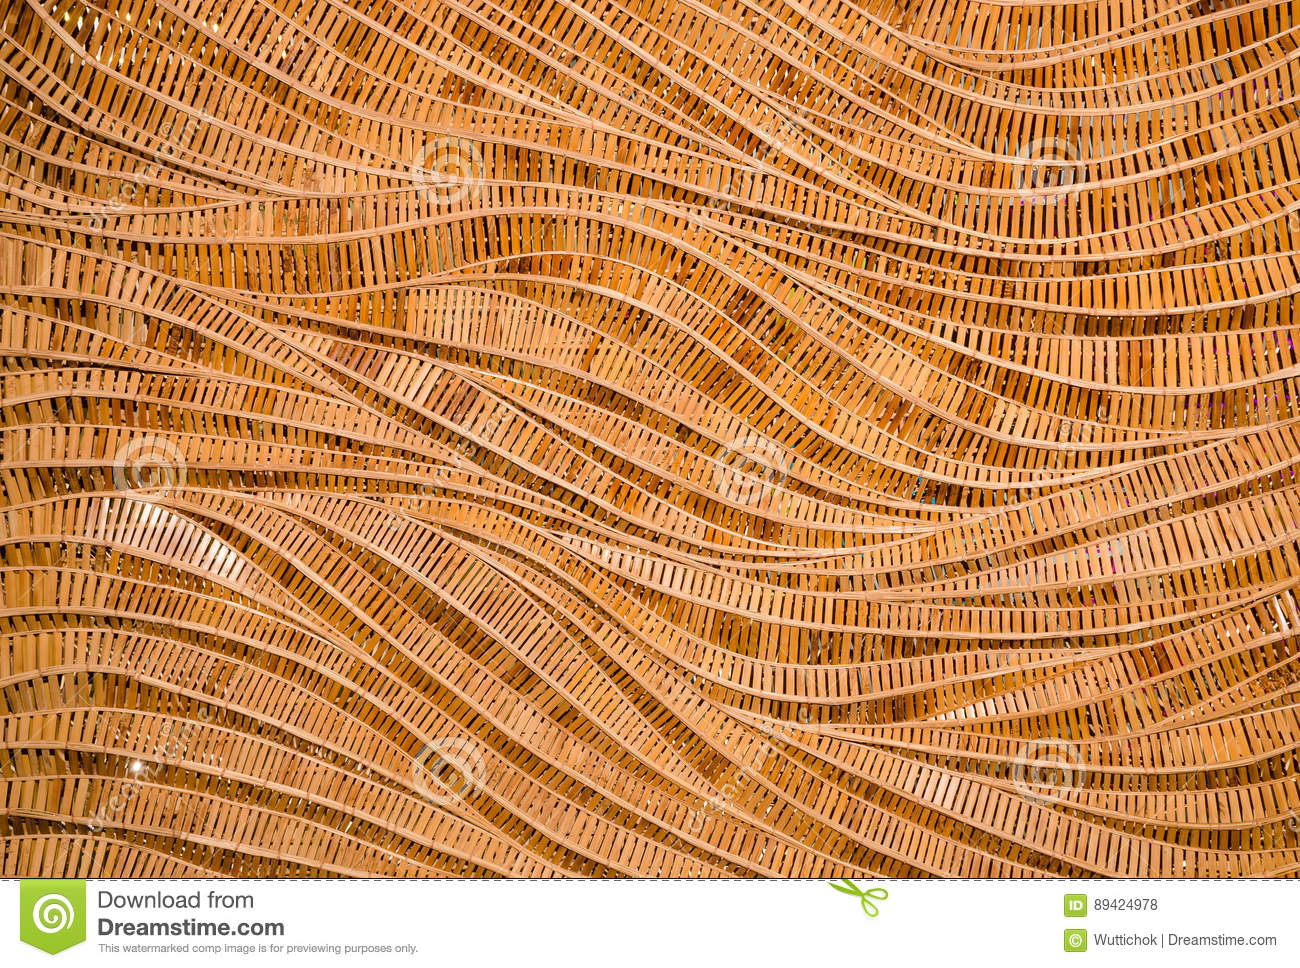 Fundo da natureza do surfa marrom do bambu da textura do weave do artesanato